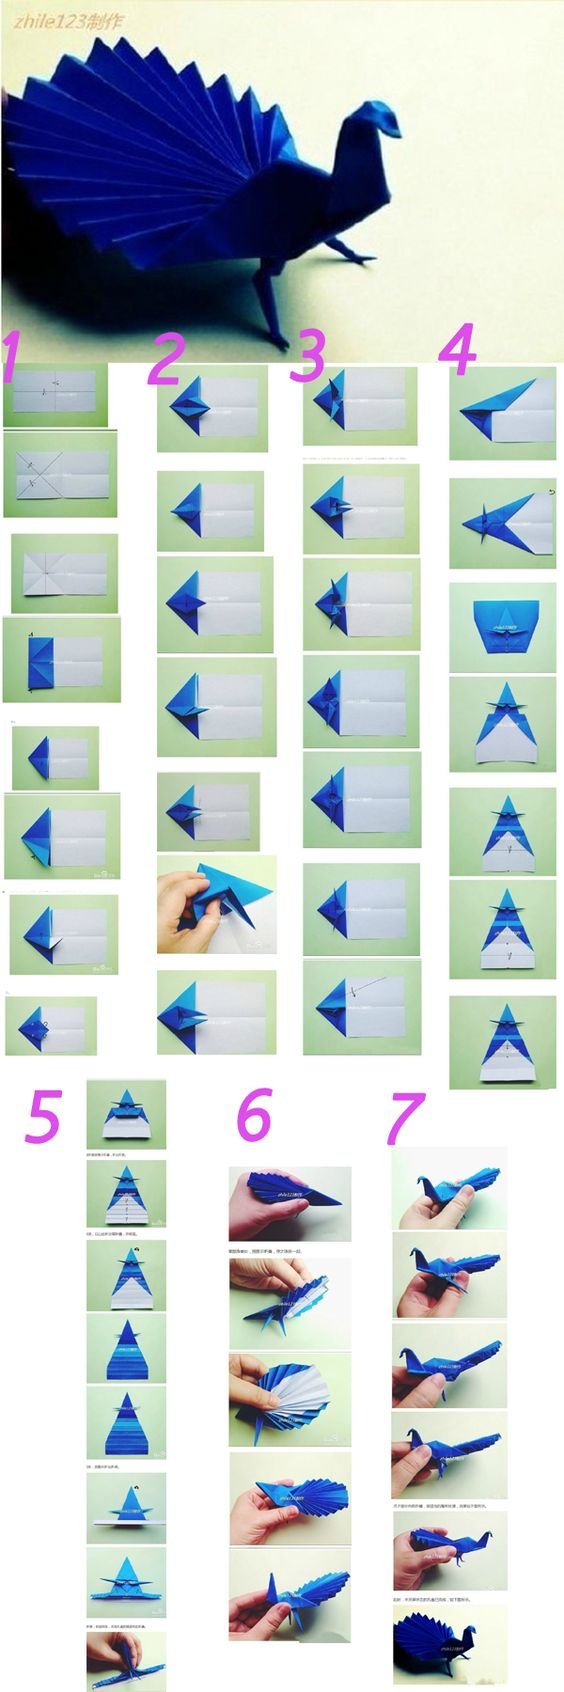 The origami tutorials to make Peacock.We can make one when are free or have low moon,it help us to improve our bad moon.